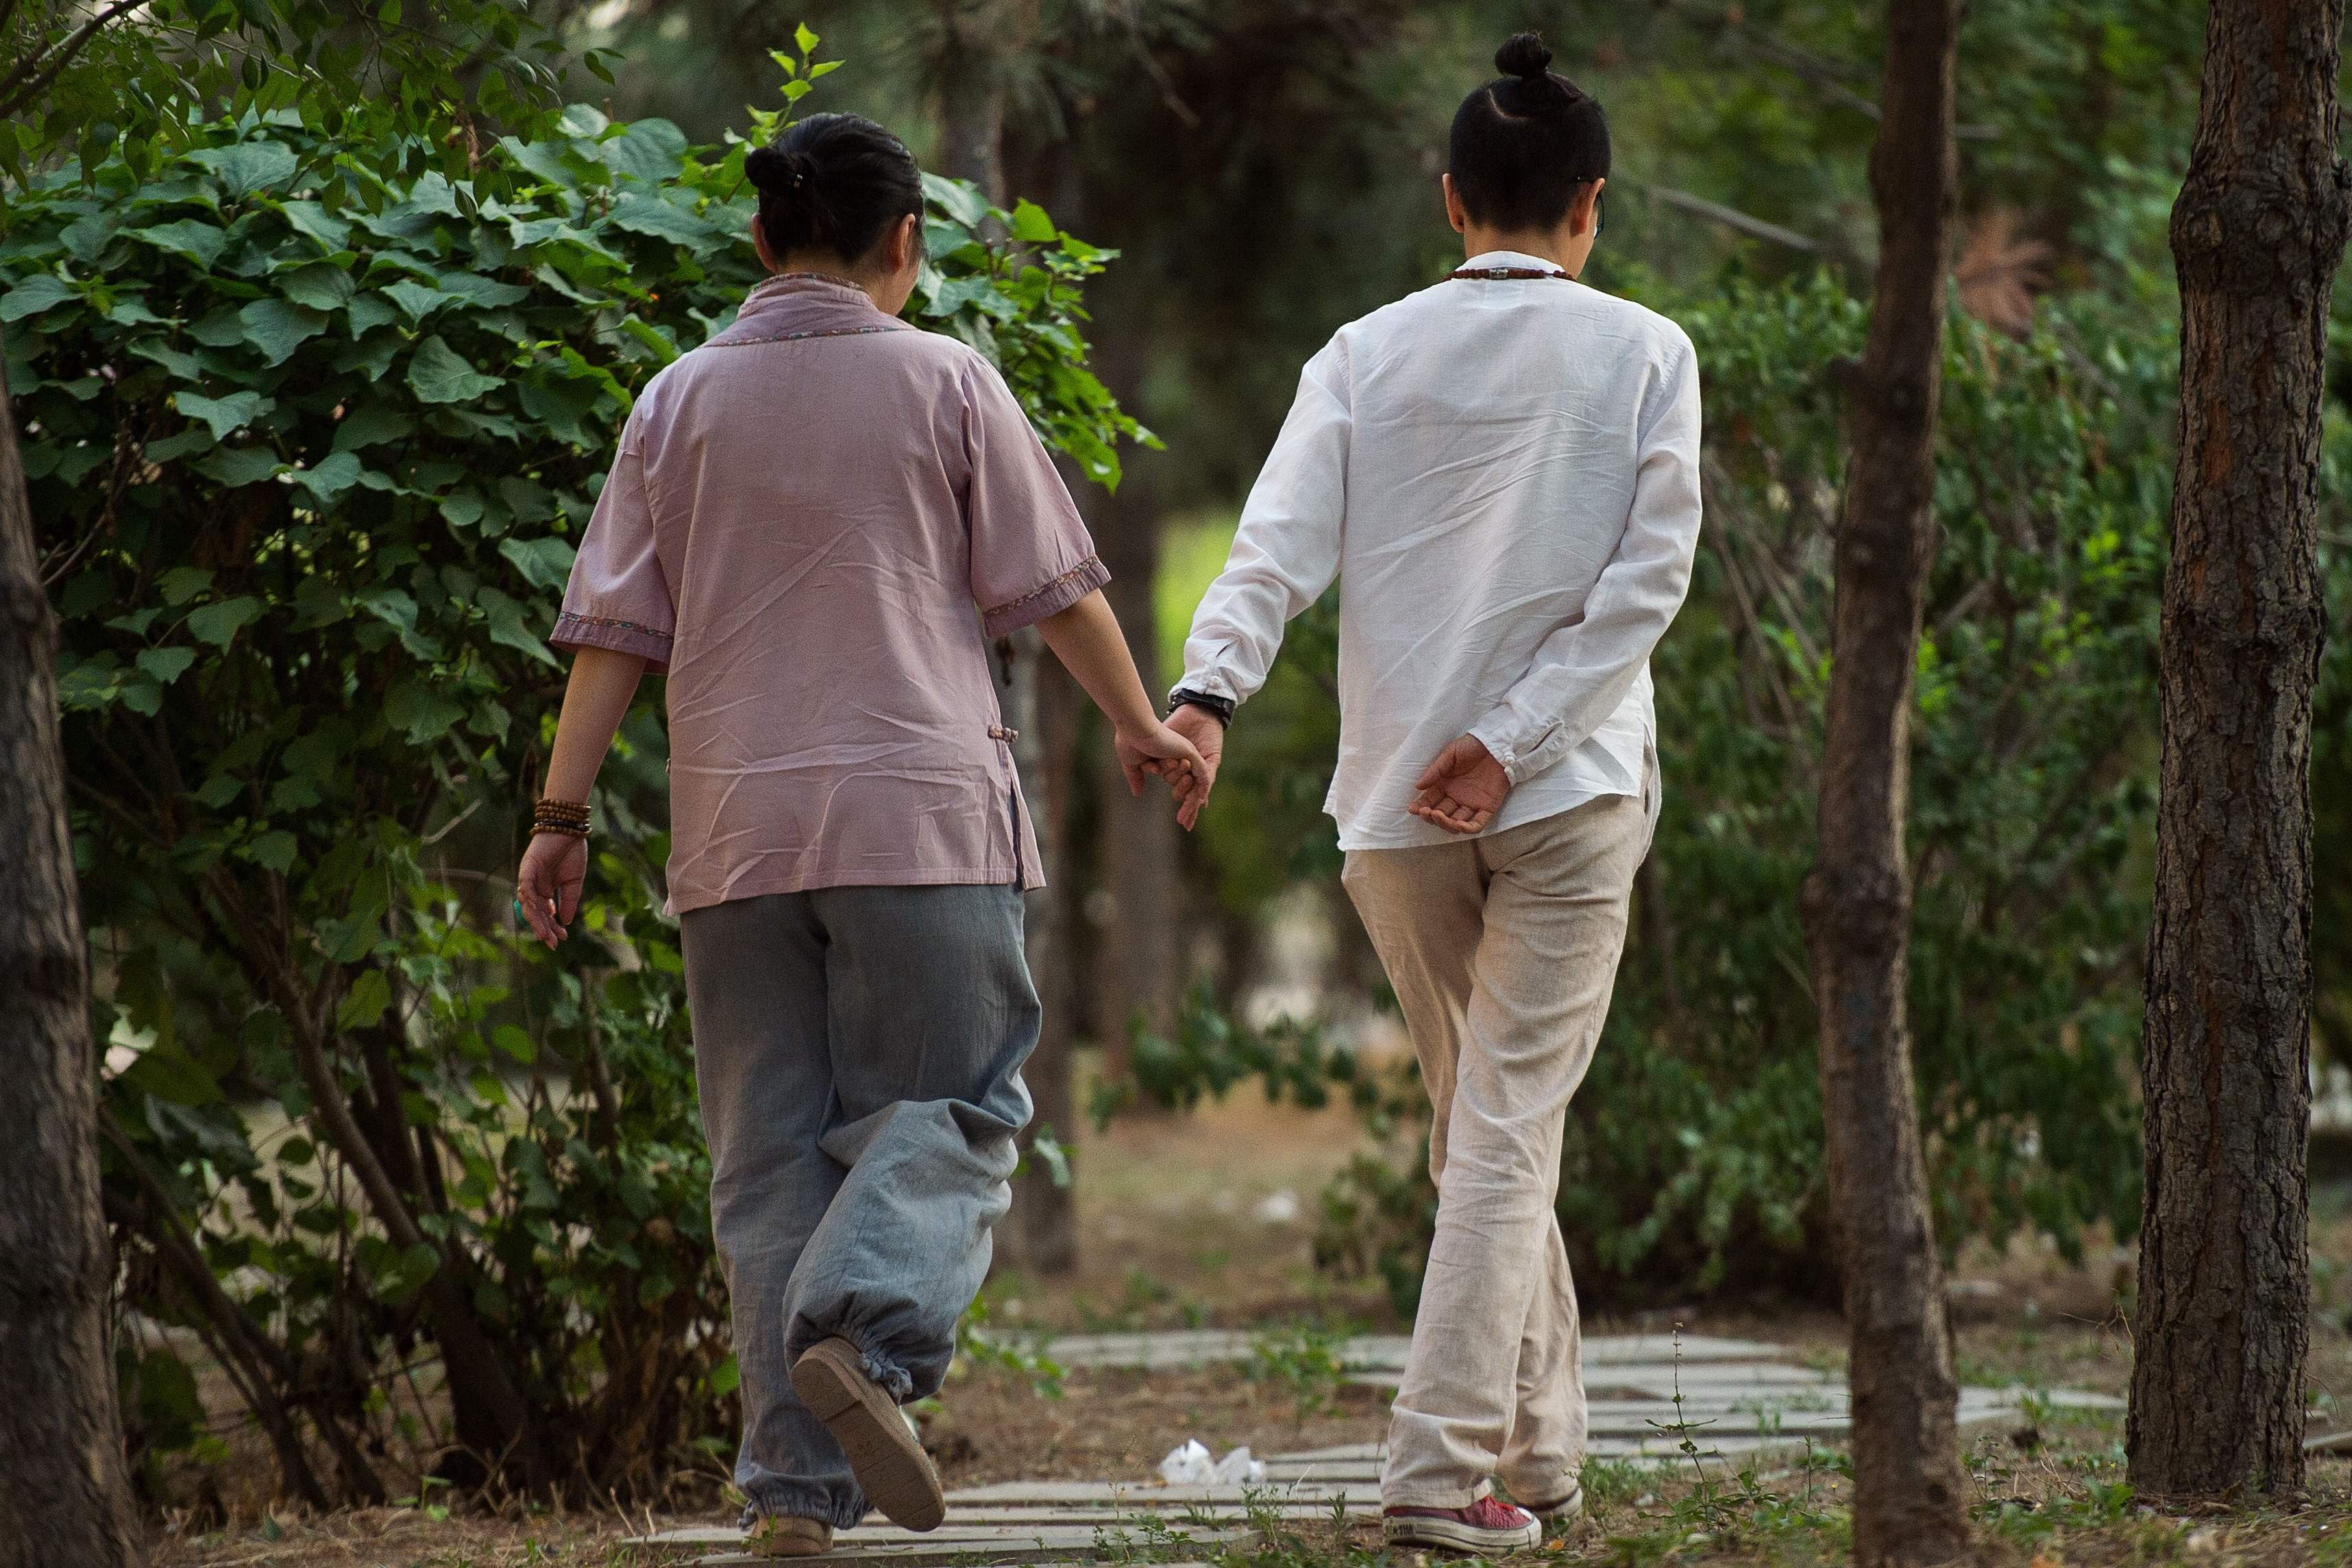 China laws on sexual orientation